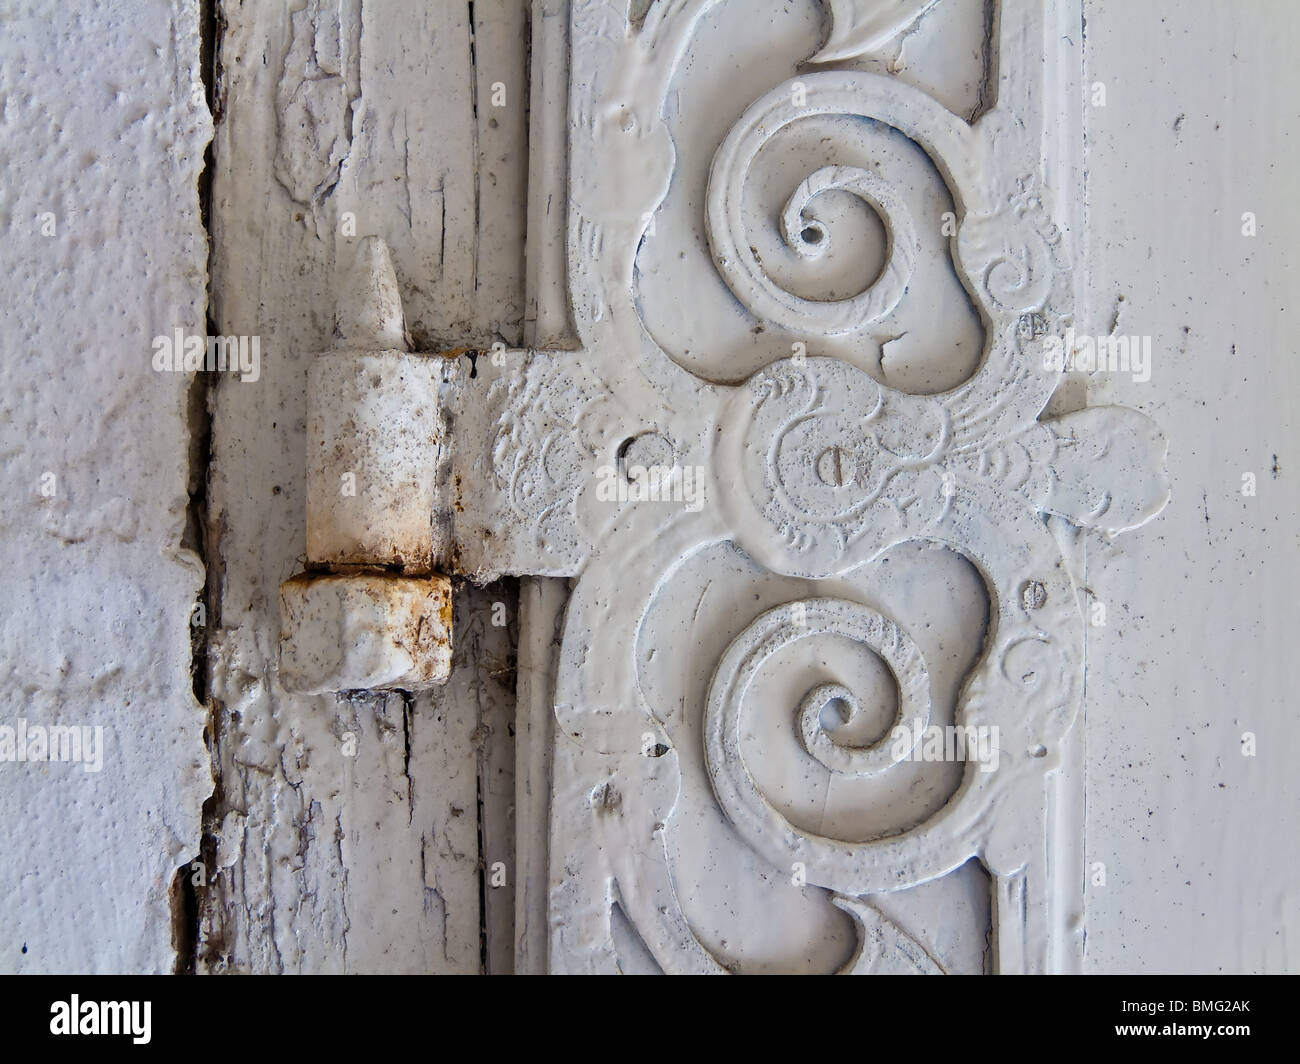 Old hinge of a door of a dwelling Stock Photo, Royalty Free Image ...